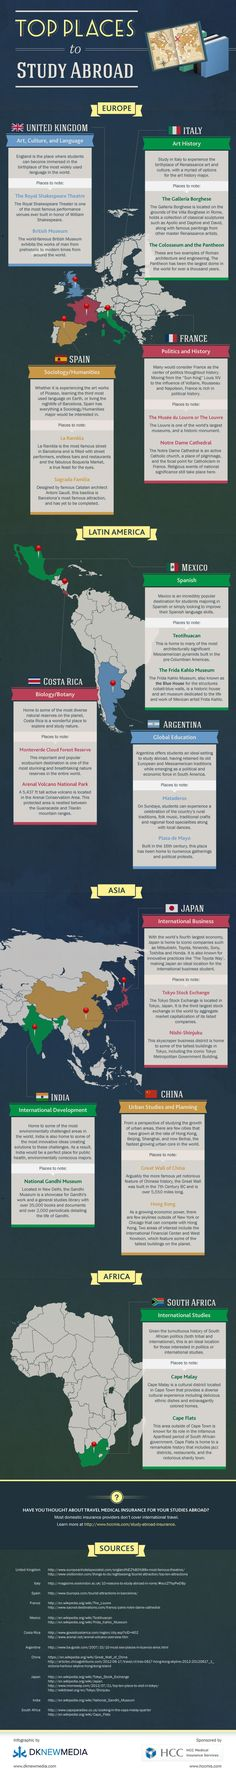 Study abroad info graphic of the top places to study abroad! #travel #studyabroad